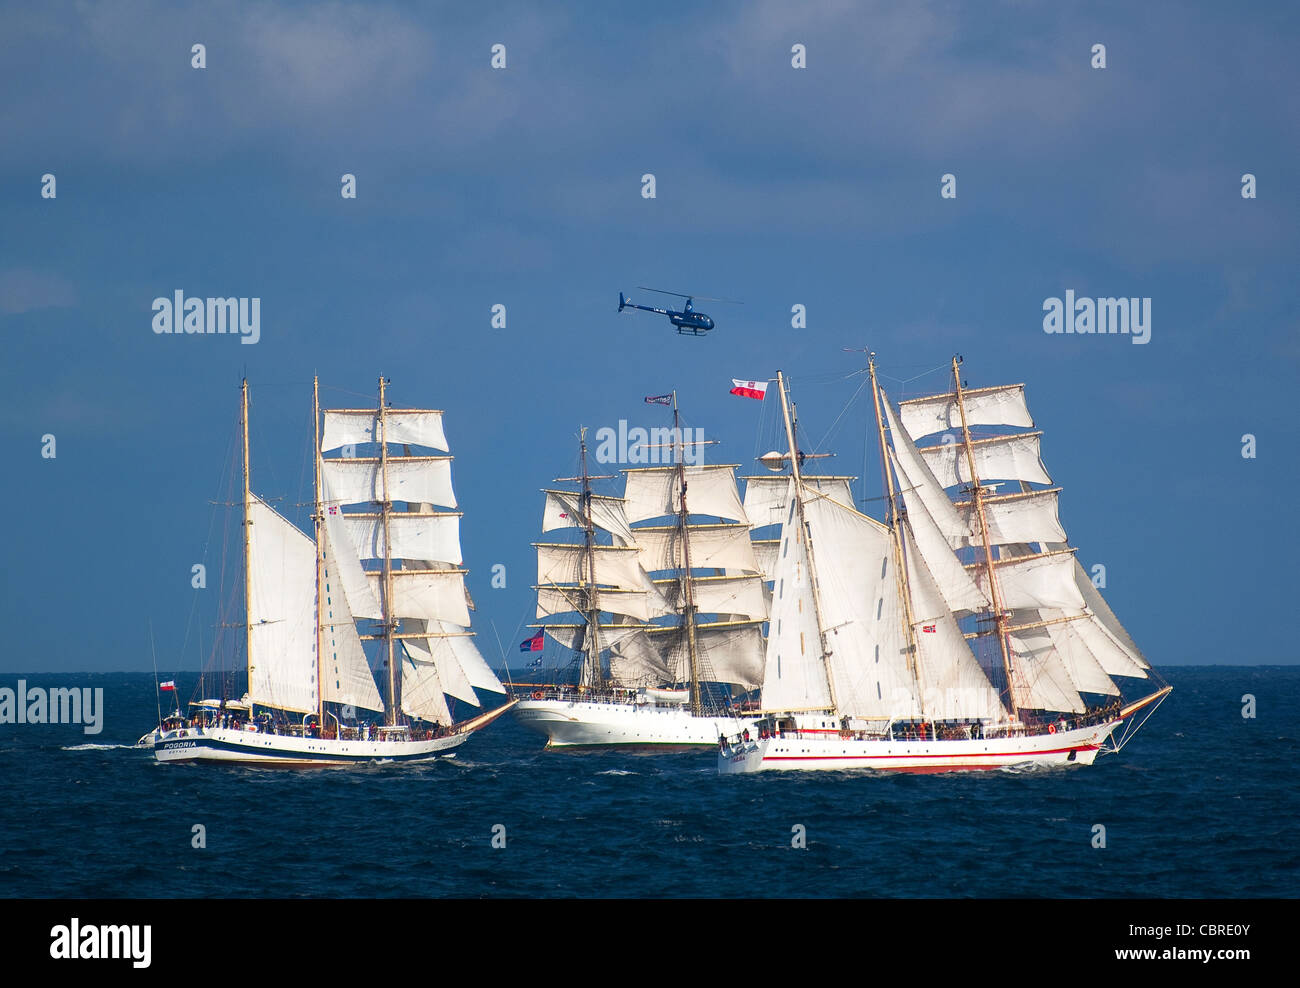 Tall ships departing Kristiansand on their way to sea for the Tall Ships race - Stock Image